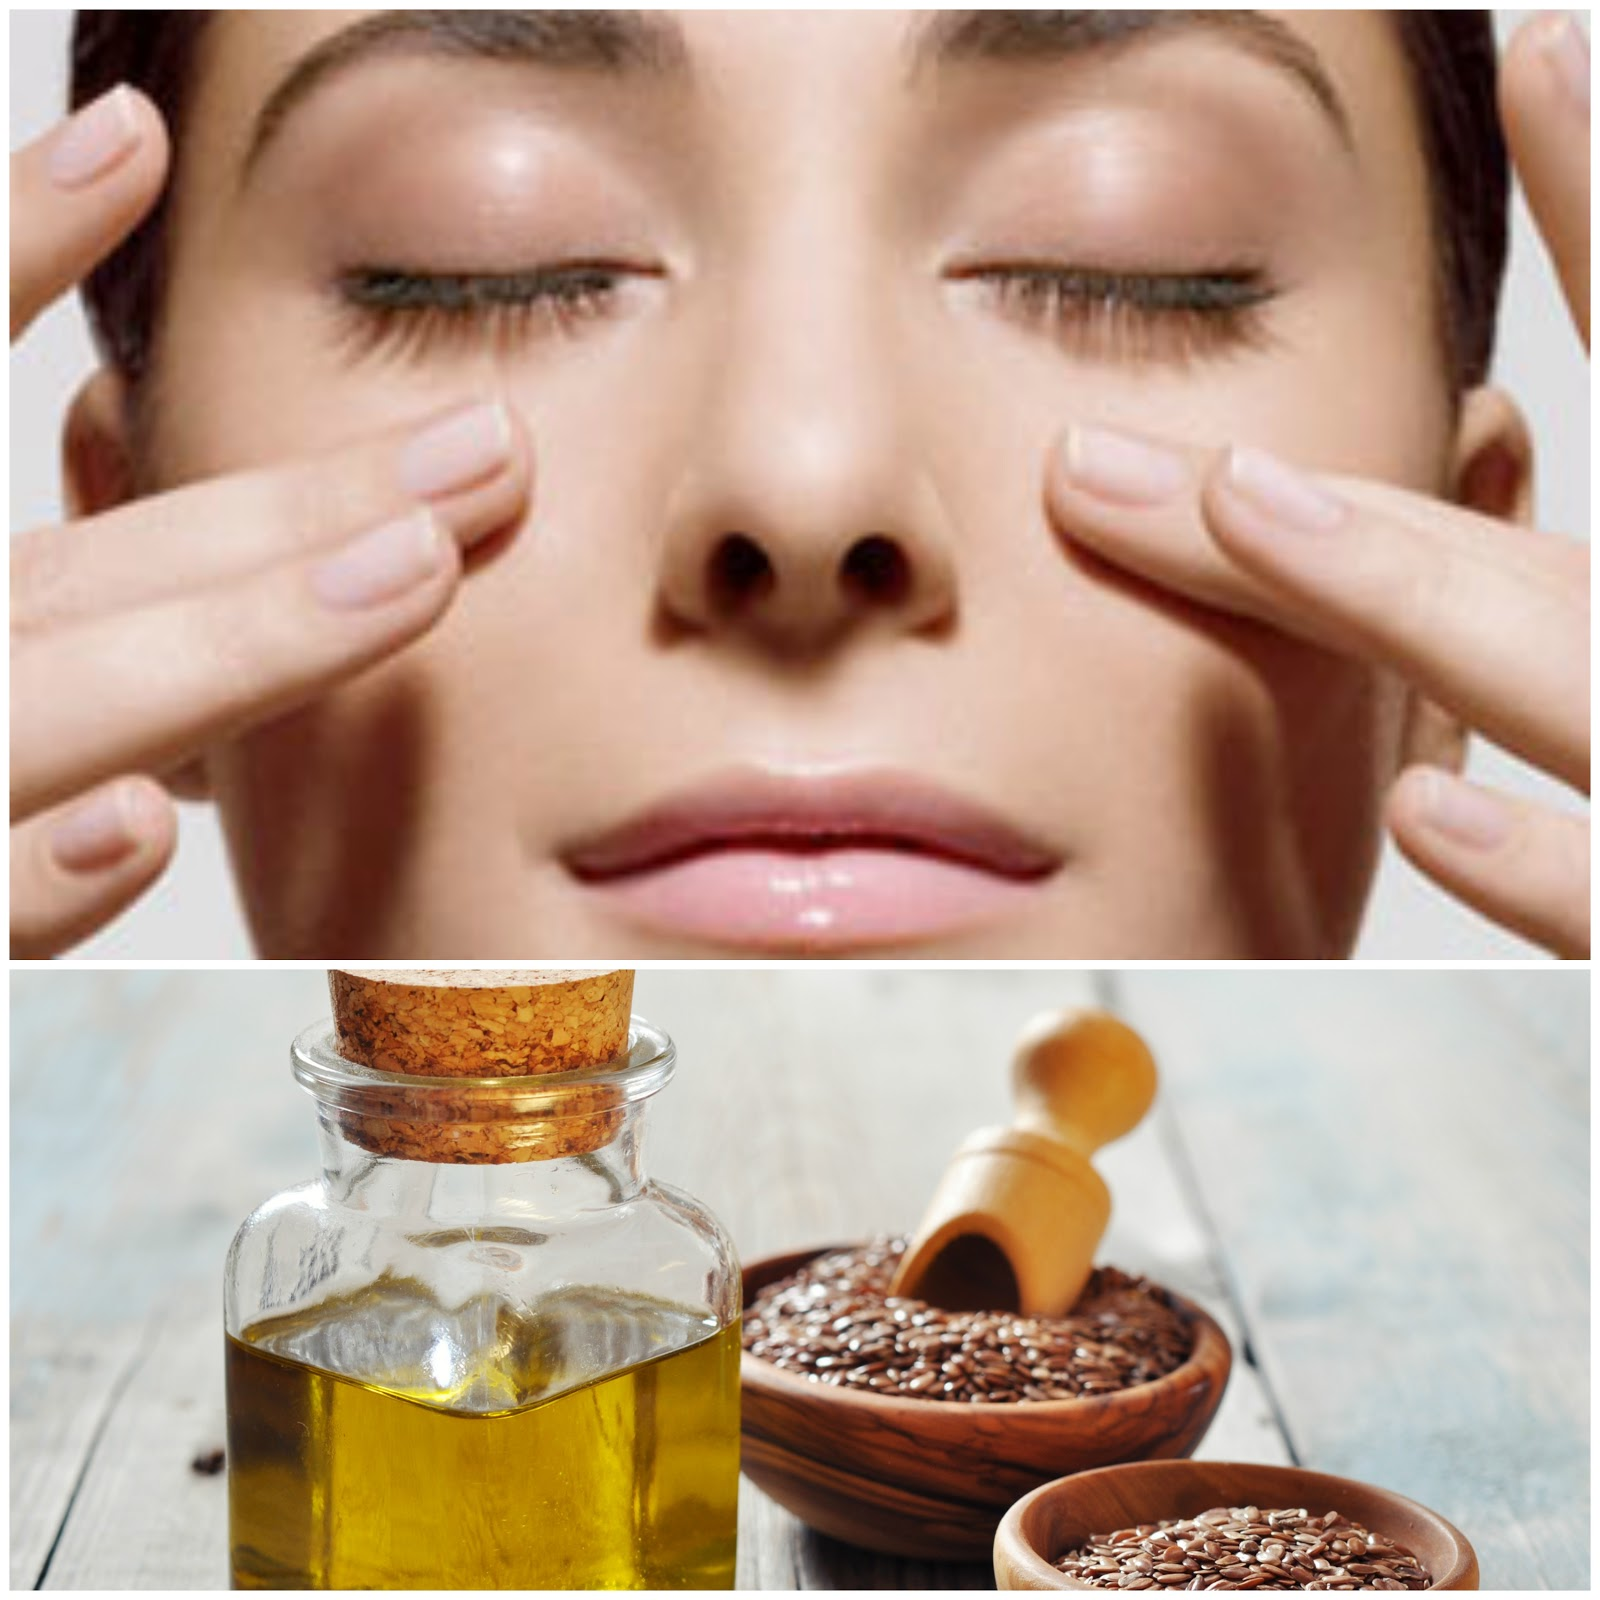 a-facial-helps-to-reduce-gift-for-teenage-girls-under